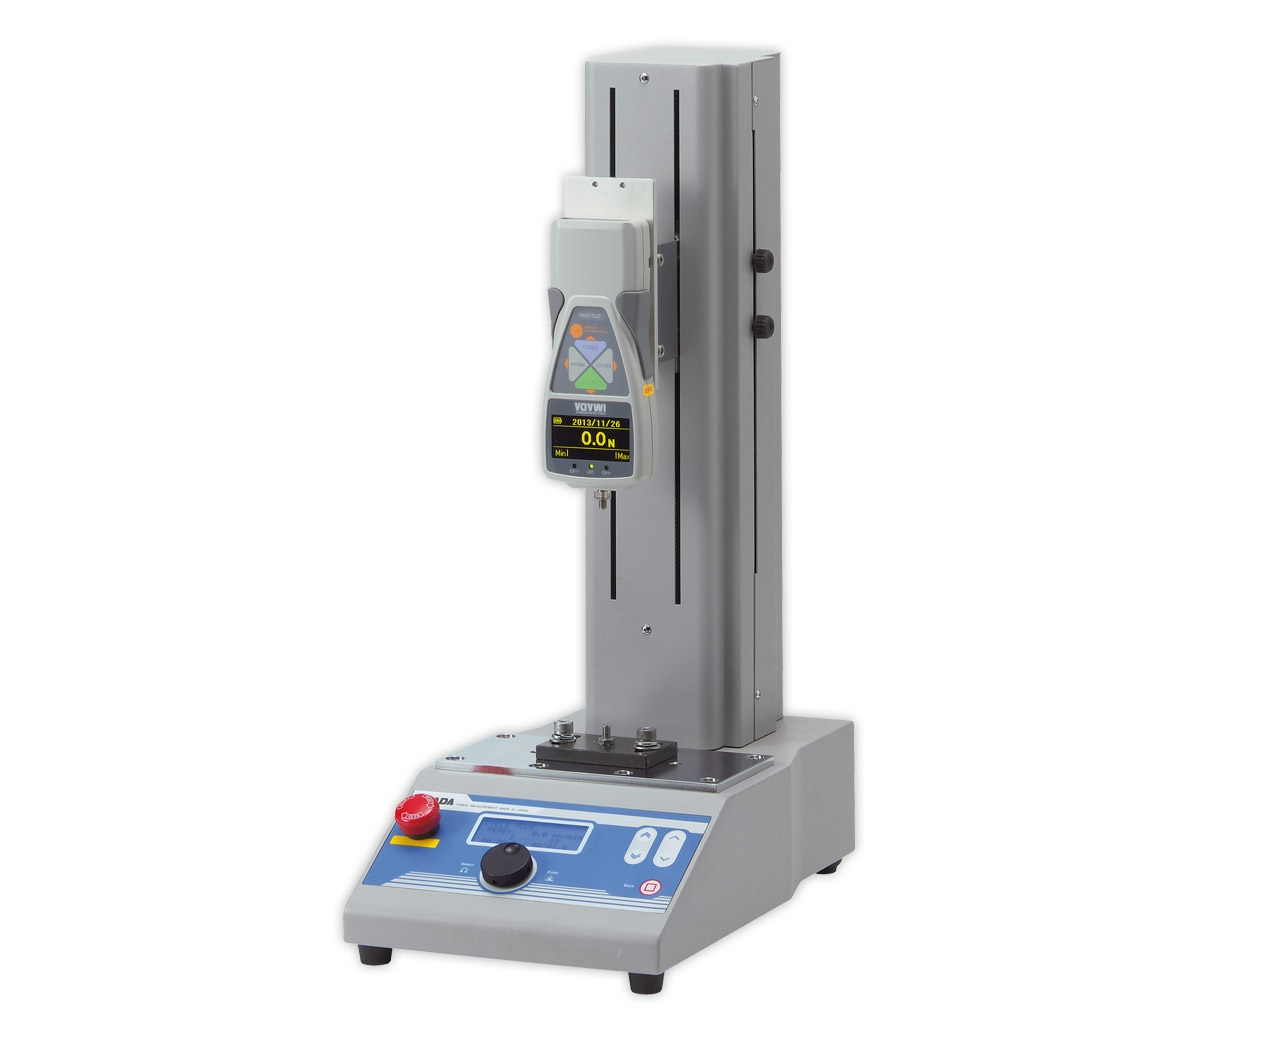 """NEW"" 5000N VERTICAL MOTORIZED TEST STAND - MX2 series"